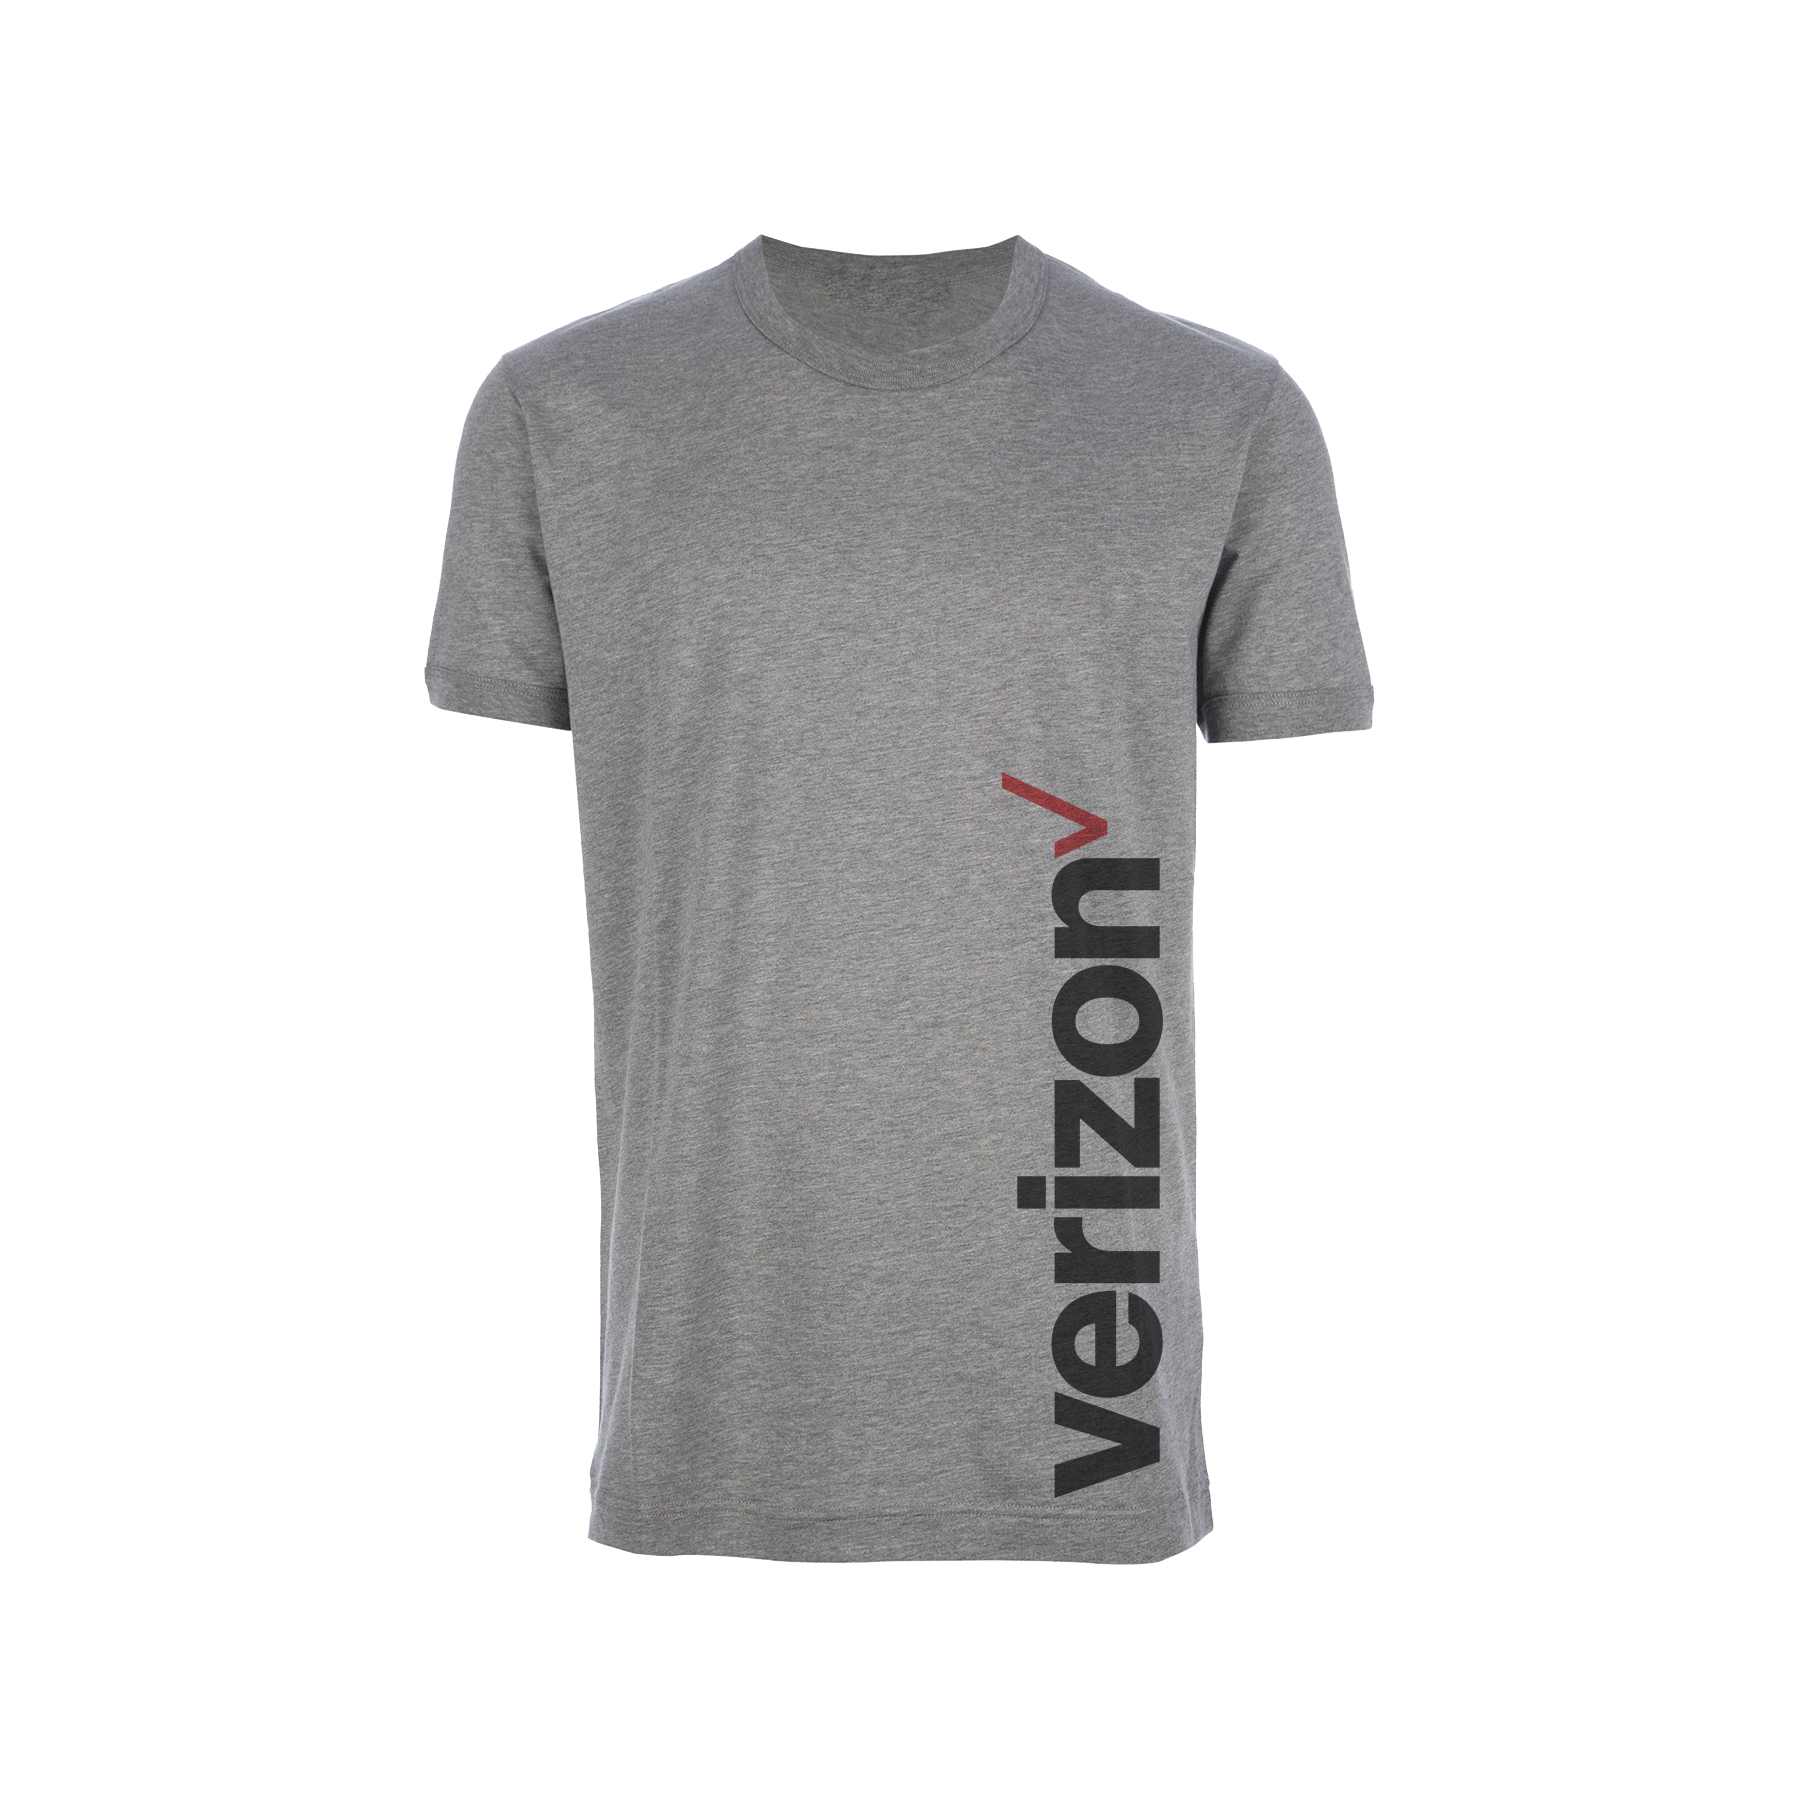 Gildan 5.3oz Verizon Wireless Branded T-Shirt